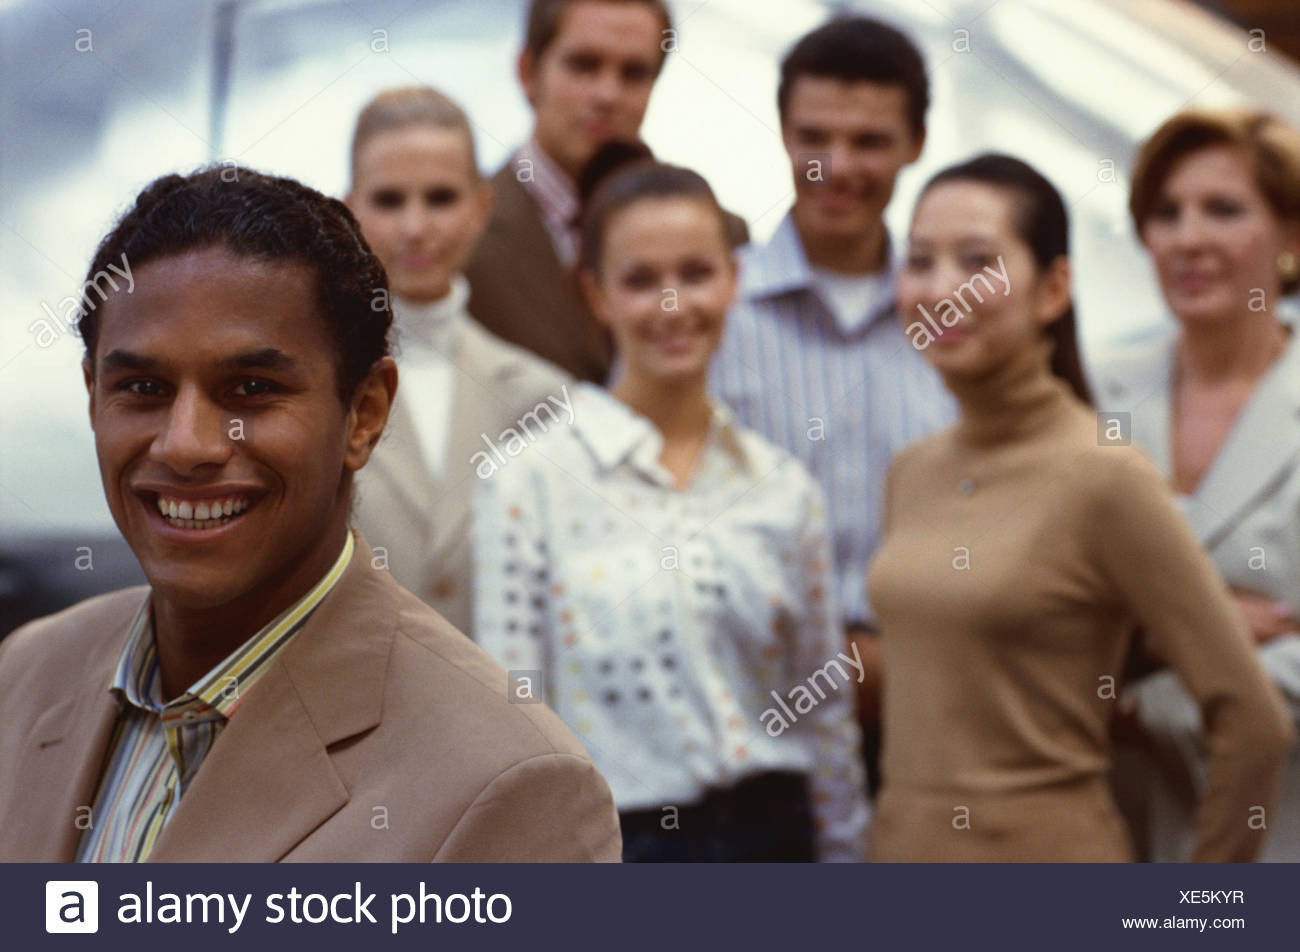 Businessman, in Indian, background group, employee, business, office, manager, entrepreneur, team leader, manager, head department, team conductor, skilled worker, served, computer specialist, computer expert, IT expert, head department, Indian, Greencard - Stock Image